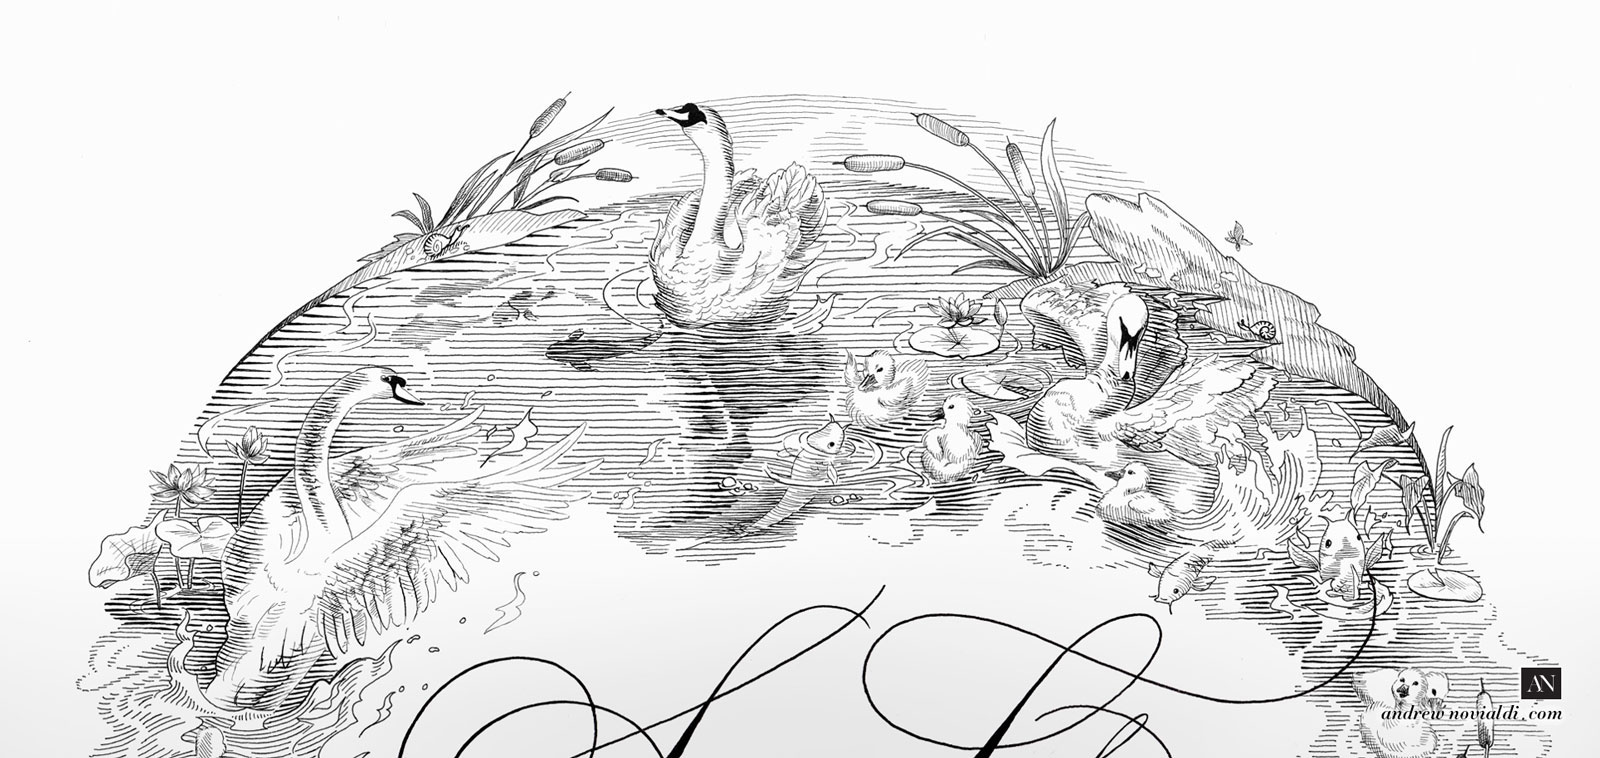 Swan Lake Illustration Engraving Pen and Ink Handdrawn Poster